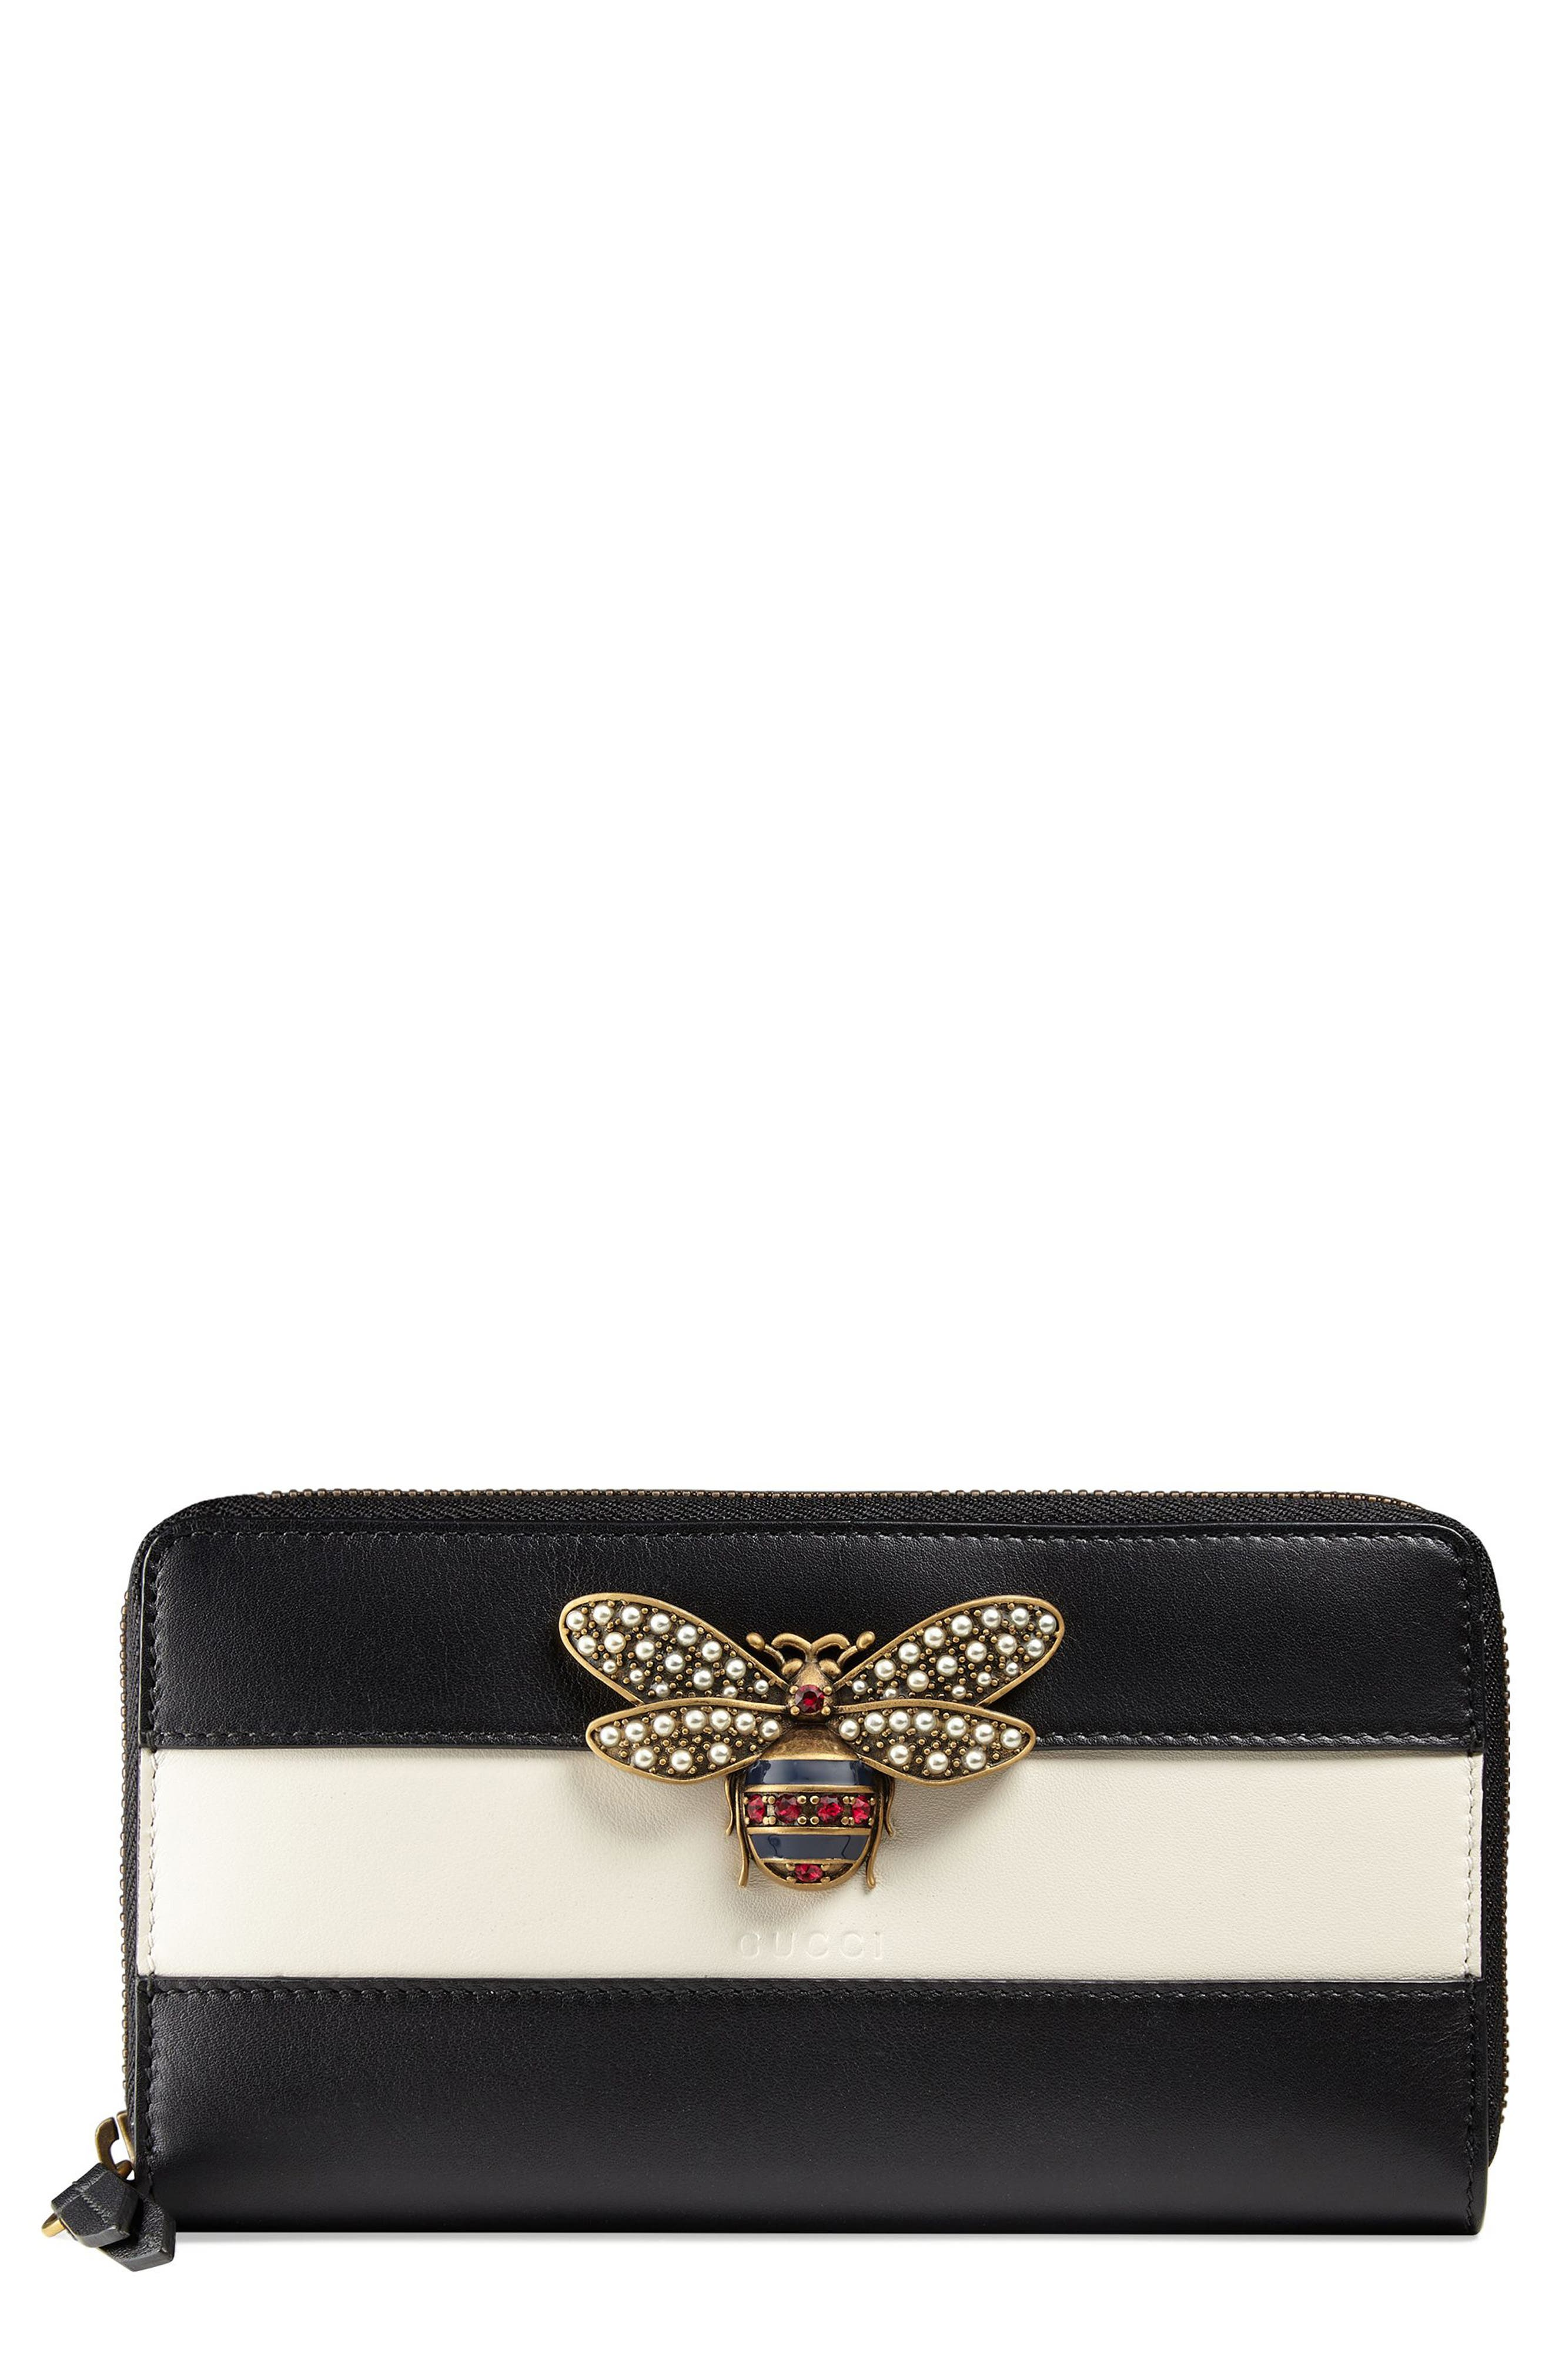 Alternate Image 1 Selected - Gucci Bee Leather Zip-Around Wallet